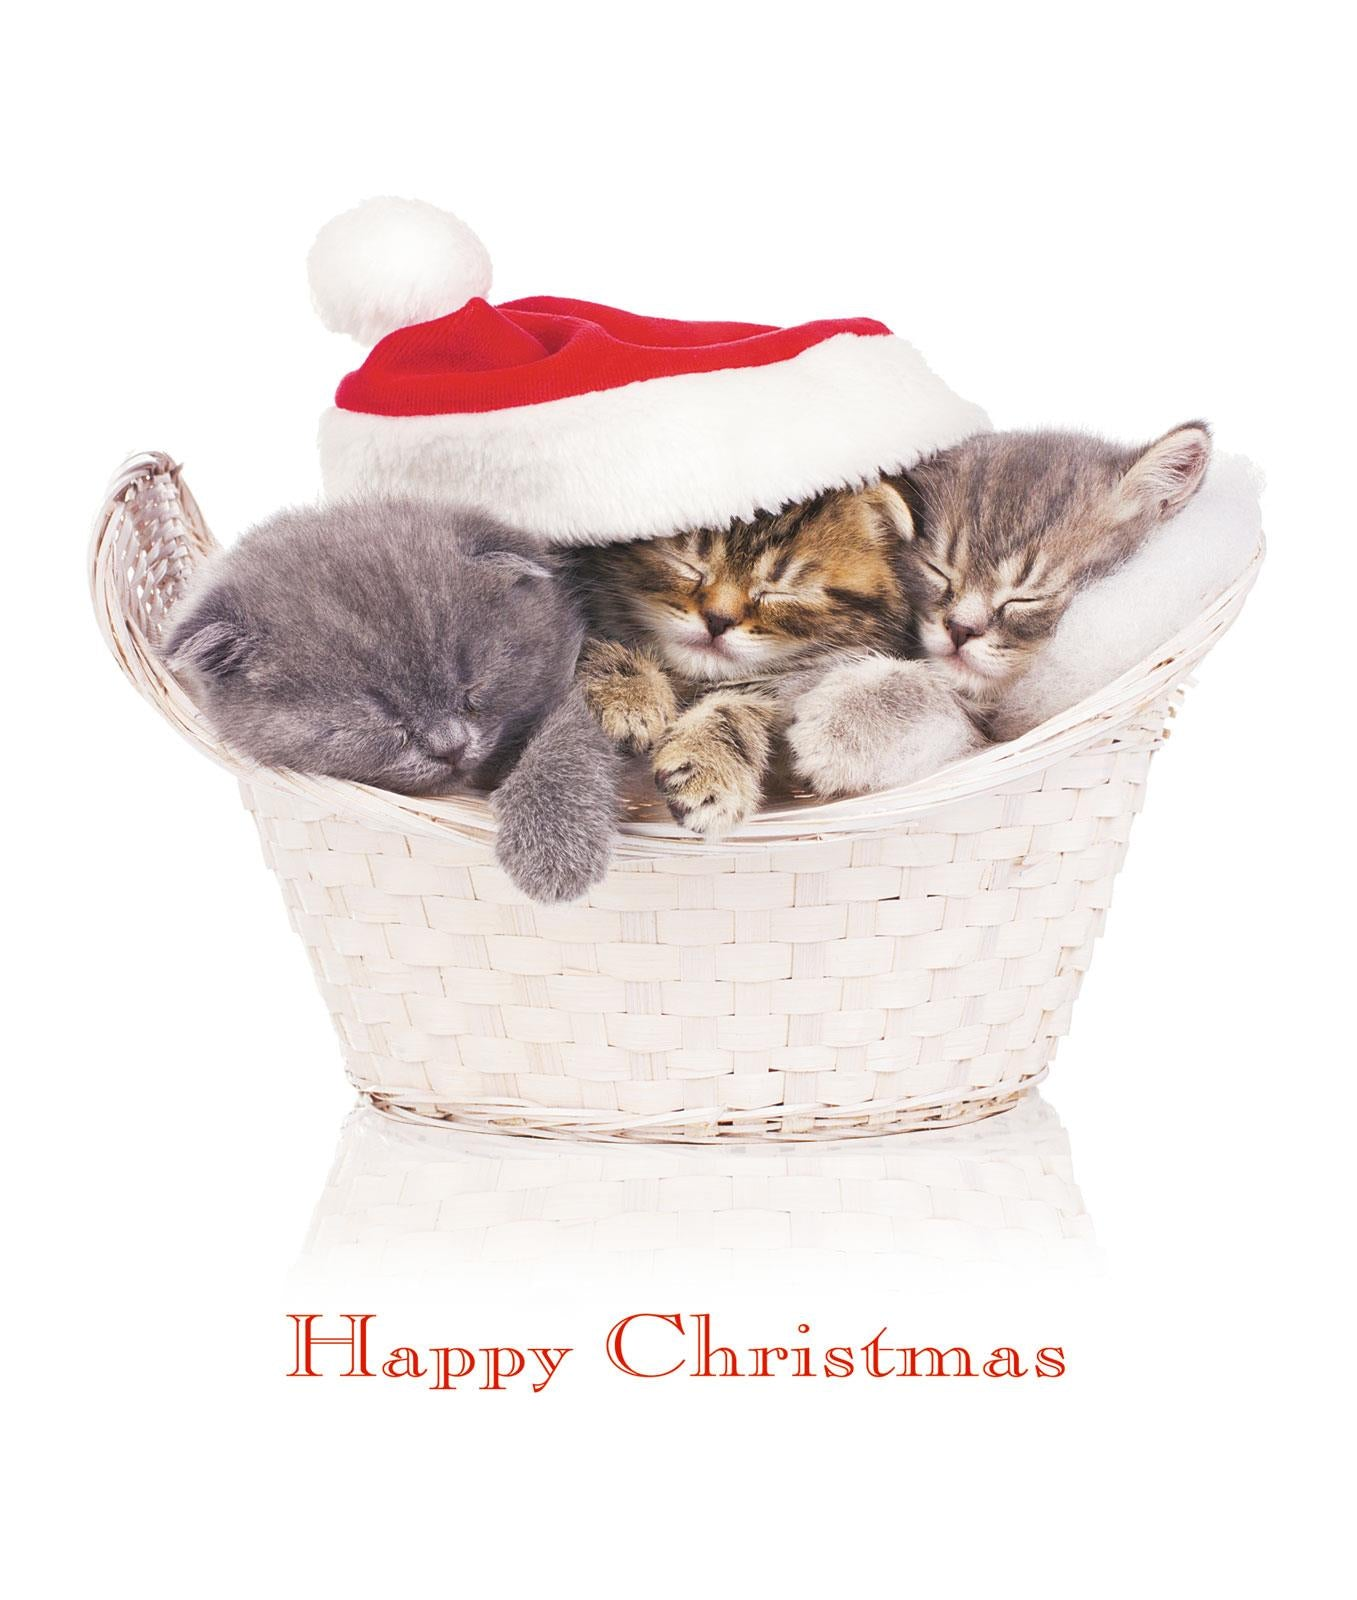 A Basketful of Joy Cat Christmas Greeting Card